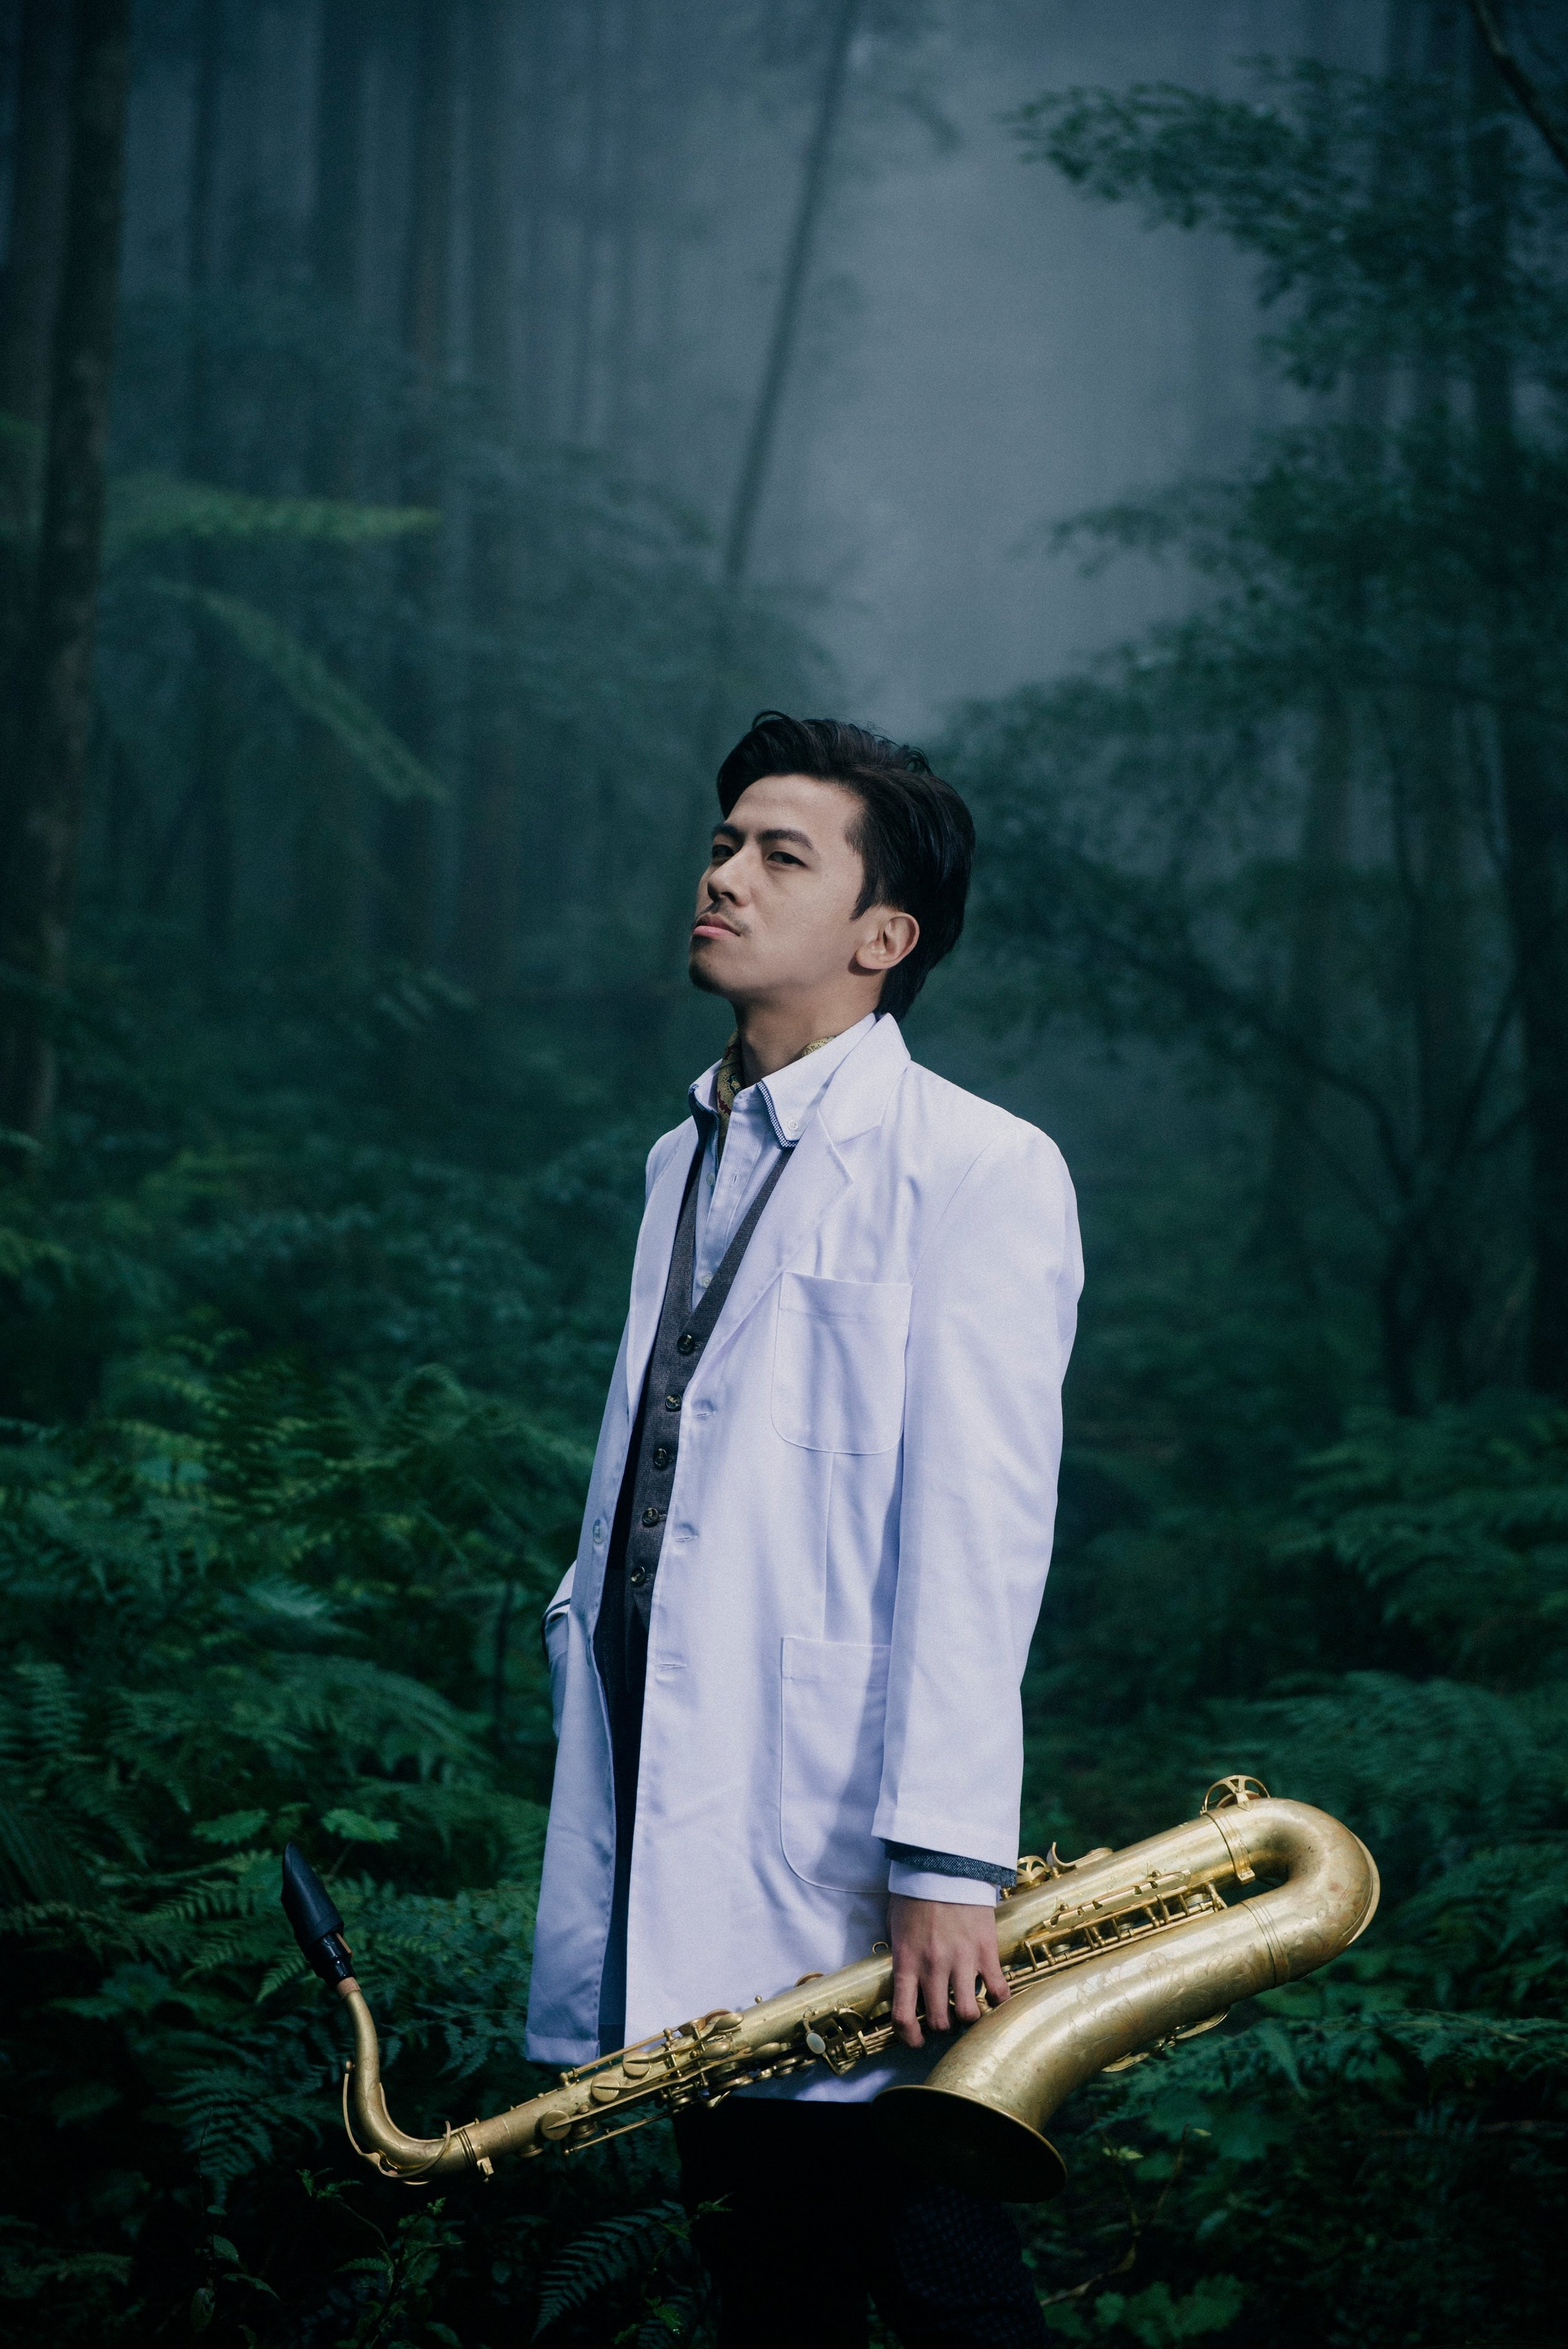 """Min-Yen Terry Hsieh Min-Yen Hsieh, Saxophonist/Woodwind, Jazz/Experimental  http://soundcloud.com/minyenhsieh    Born in Taipei City, Taiwan, 1981. Picked up his saxophone at his high school years. After graduations he began to study with local jazz musicians saxophonist Shuen-Wen Tung and violinist Chi-Pin Hsieh, and to perform professionally since he was 19. In 2004 he made a trip around U.S. besides to attending concerts, he also participating to master classes by Maria Schneider, Jimmy Cobb, Jimmy Heath. He came to Brussels at the autumn of 2005, to pursuing his farther study at Koninklijk Conservatorium Brussel, with John Ruocco and Jeroen Van Herzeele. Also participated many master classes such as Mark Turner, Gary Foster, Kris Defoort, Stephane Galland, Mike Maineiri, Dave Liebman, Aaron Parkers. In the summer of 2010, He received the Master Degree of Jazz Saxophone, and as the first jazz student who finished the post graduate project, summer of 2011. During the school years, he was participating actively with many different music projects outside of school, including """"Salsablonsera"""", """"J.V.M. Group"""",""""À Flor da Pele"""", """"MYH Group"""", """"Marie Séférian Quintet"""", """"Interstellar Odyssey"""", """"Causal Encounter"""", """"Tristano Project"""",""""The Nine"""". The music style various wildly from traditional swing to modern jazz, fusion, latin and free improvisation. He has been performed in many famous venues and festival in Belgium: Sounds, Music Village, Hopper, Flagey, Beursschouwburg, Jazz Station, Brussels Jazz Marathon, just to name a few."""